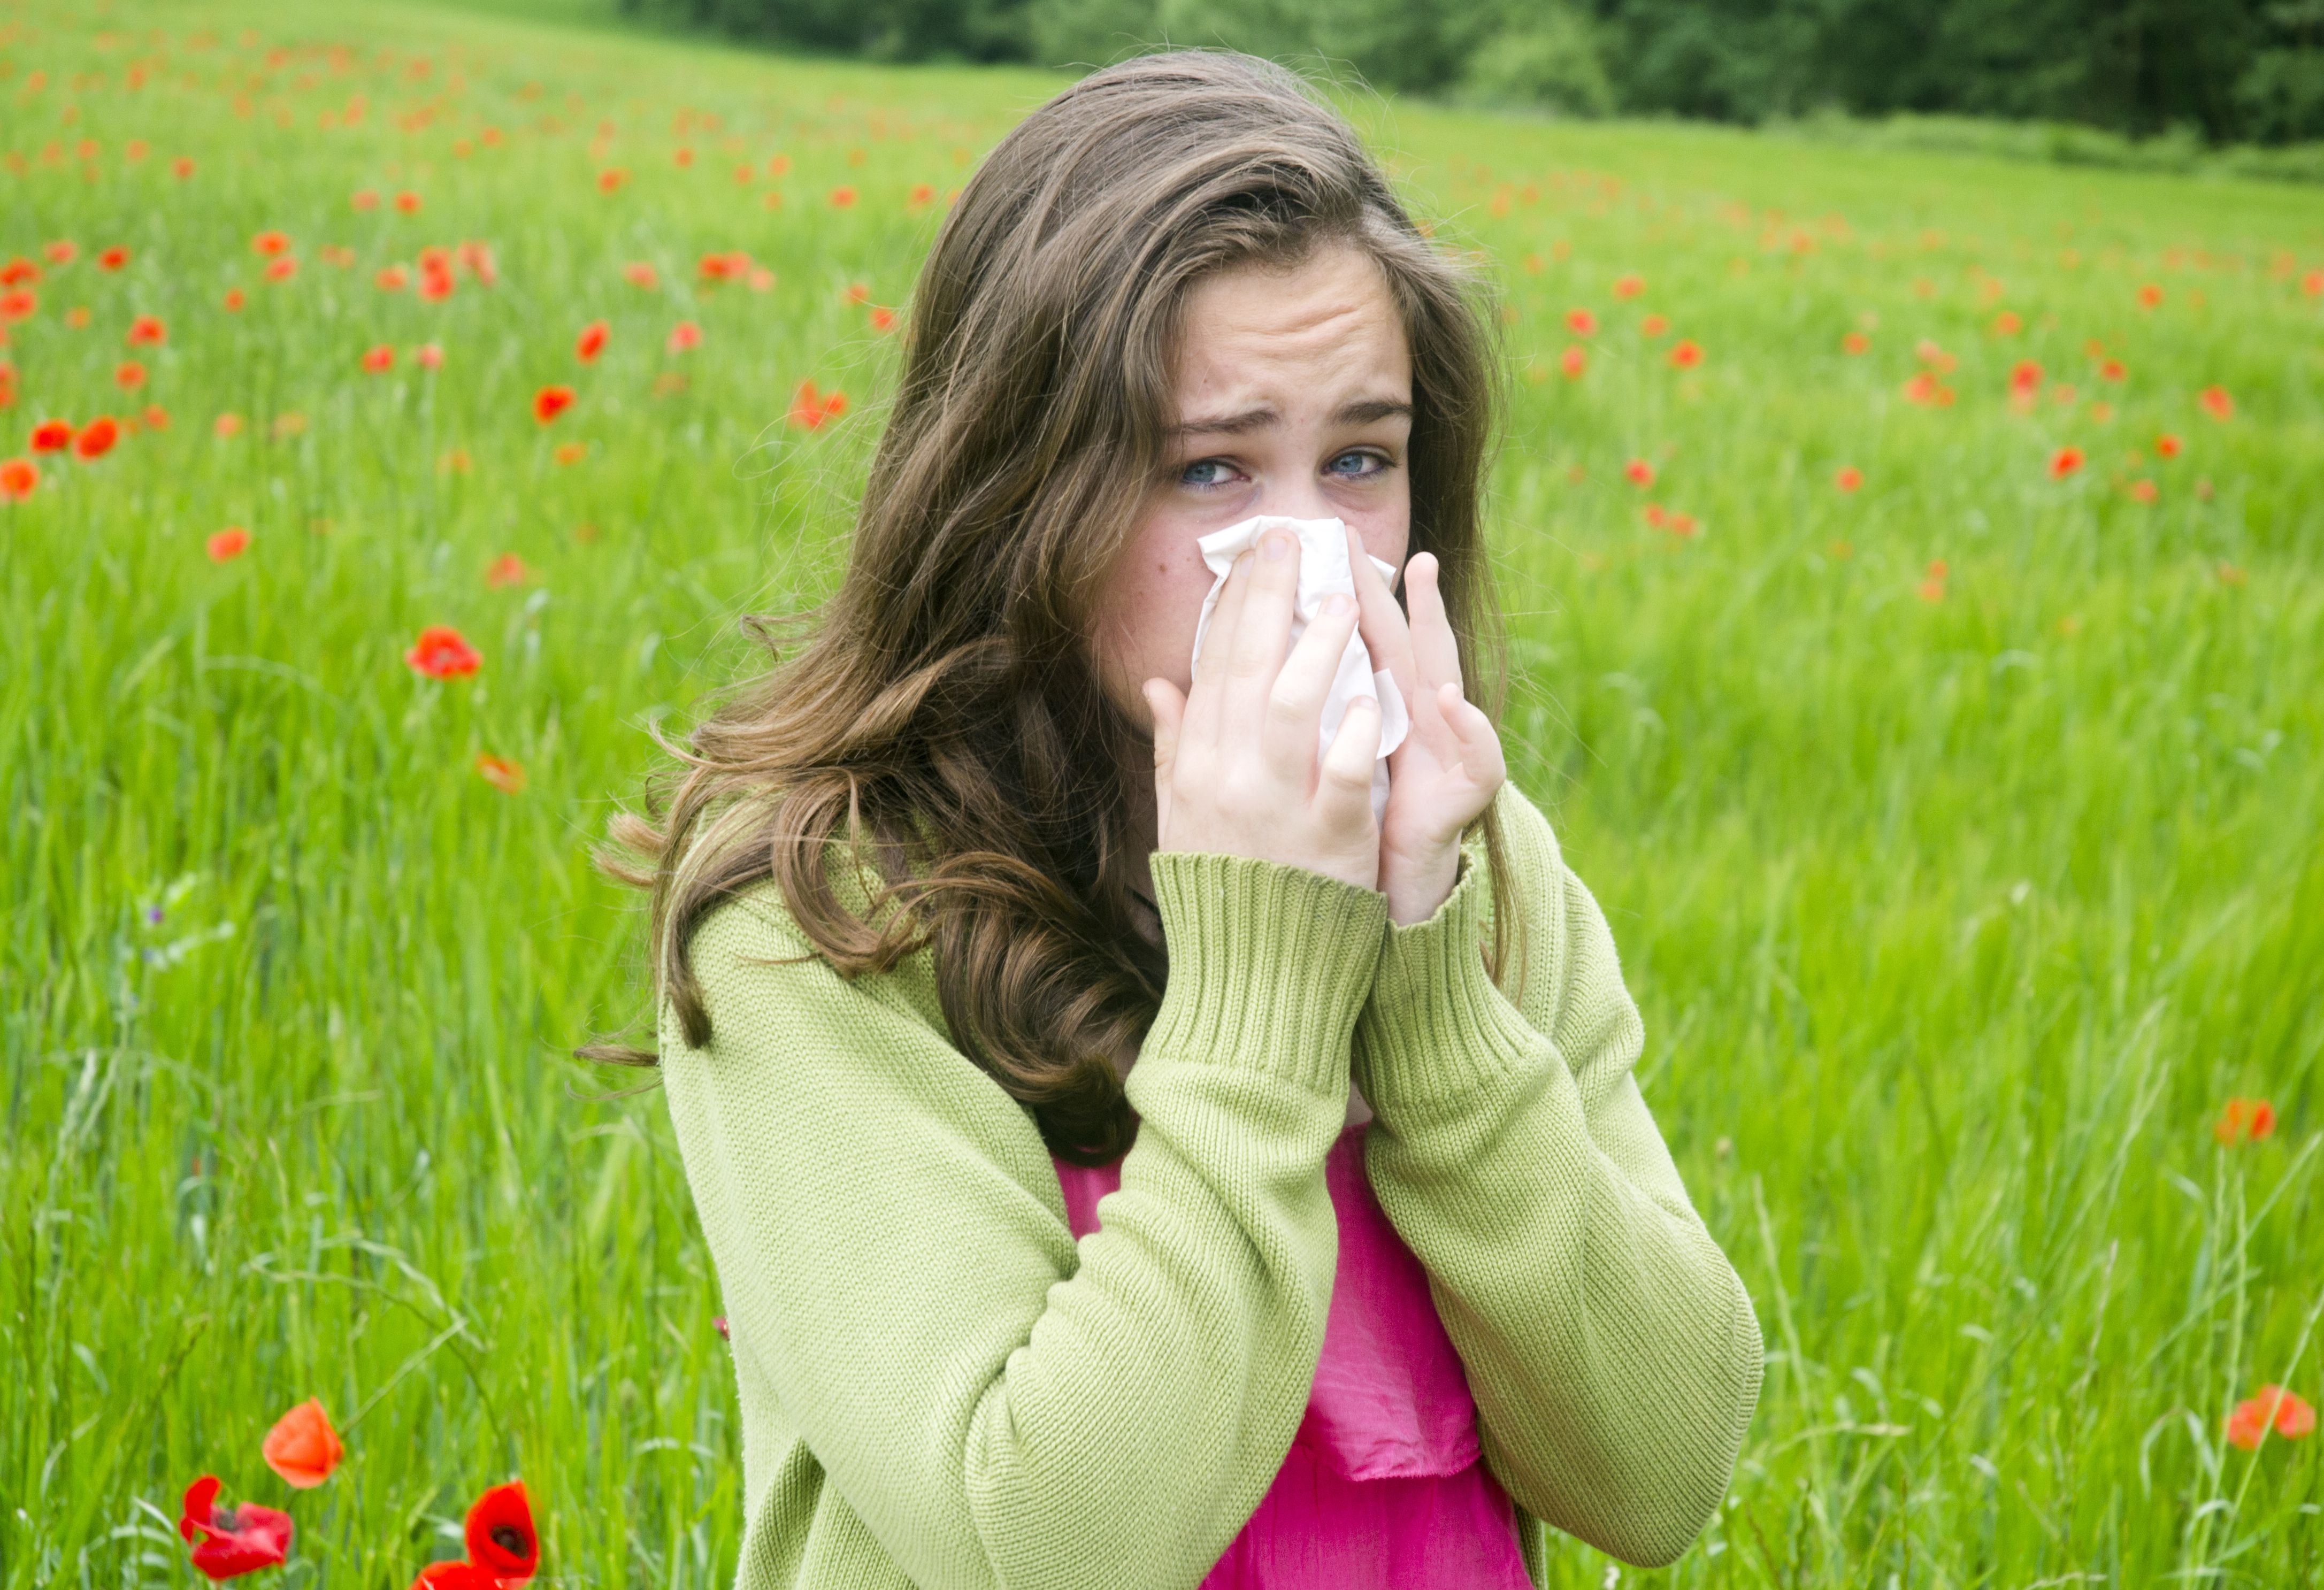 Woman with sinusitis caused by allergies